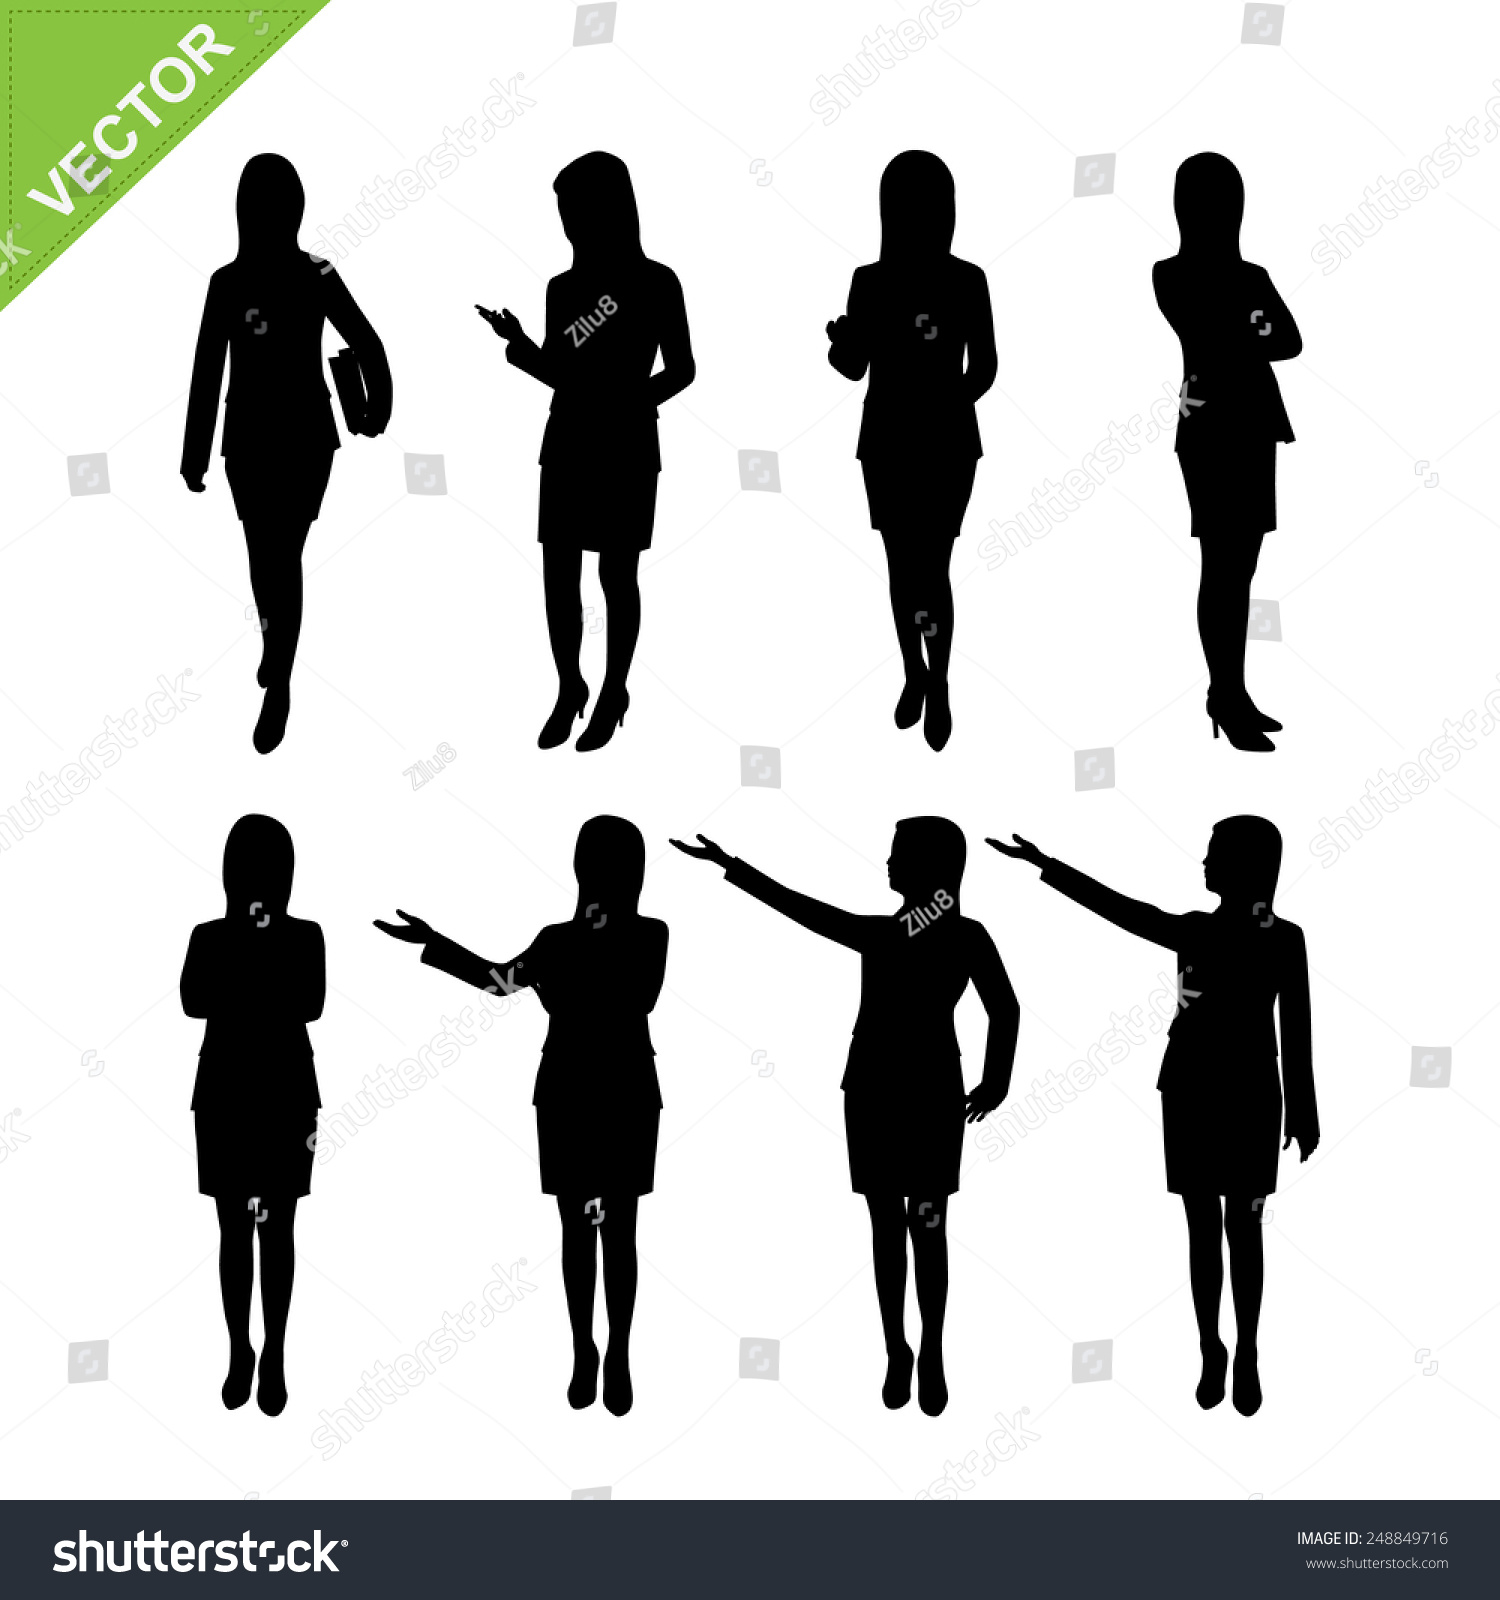 Business Woman Silhouettes Vector - 248849716 : Shutterstock